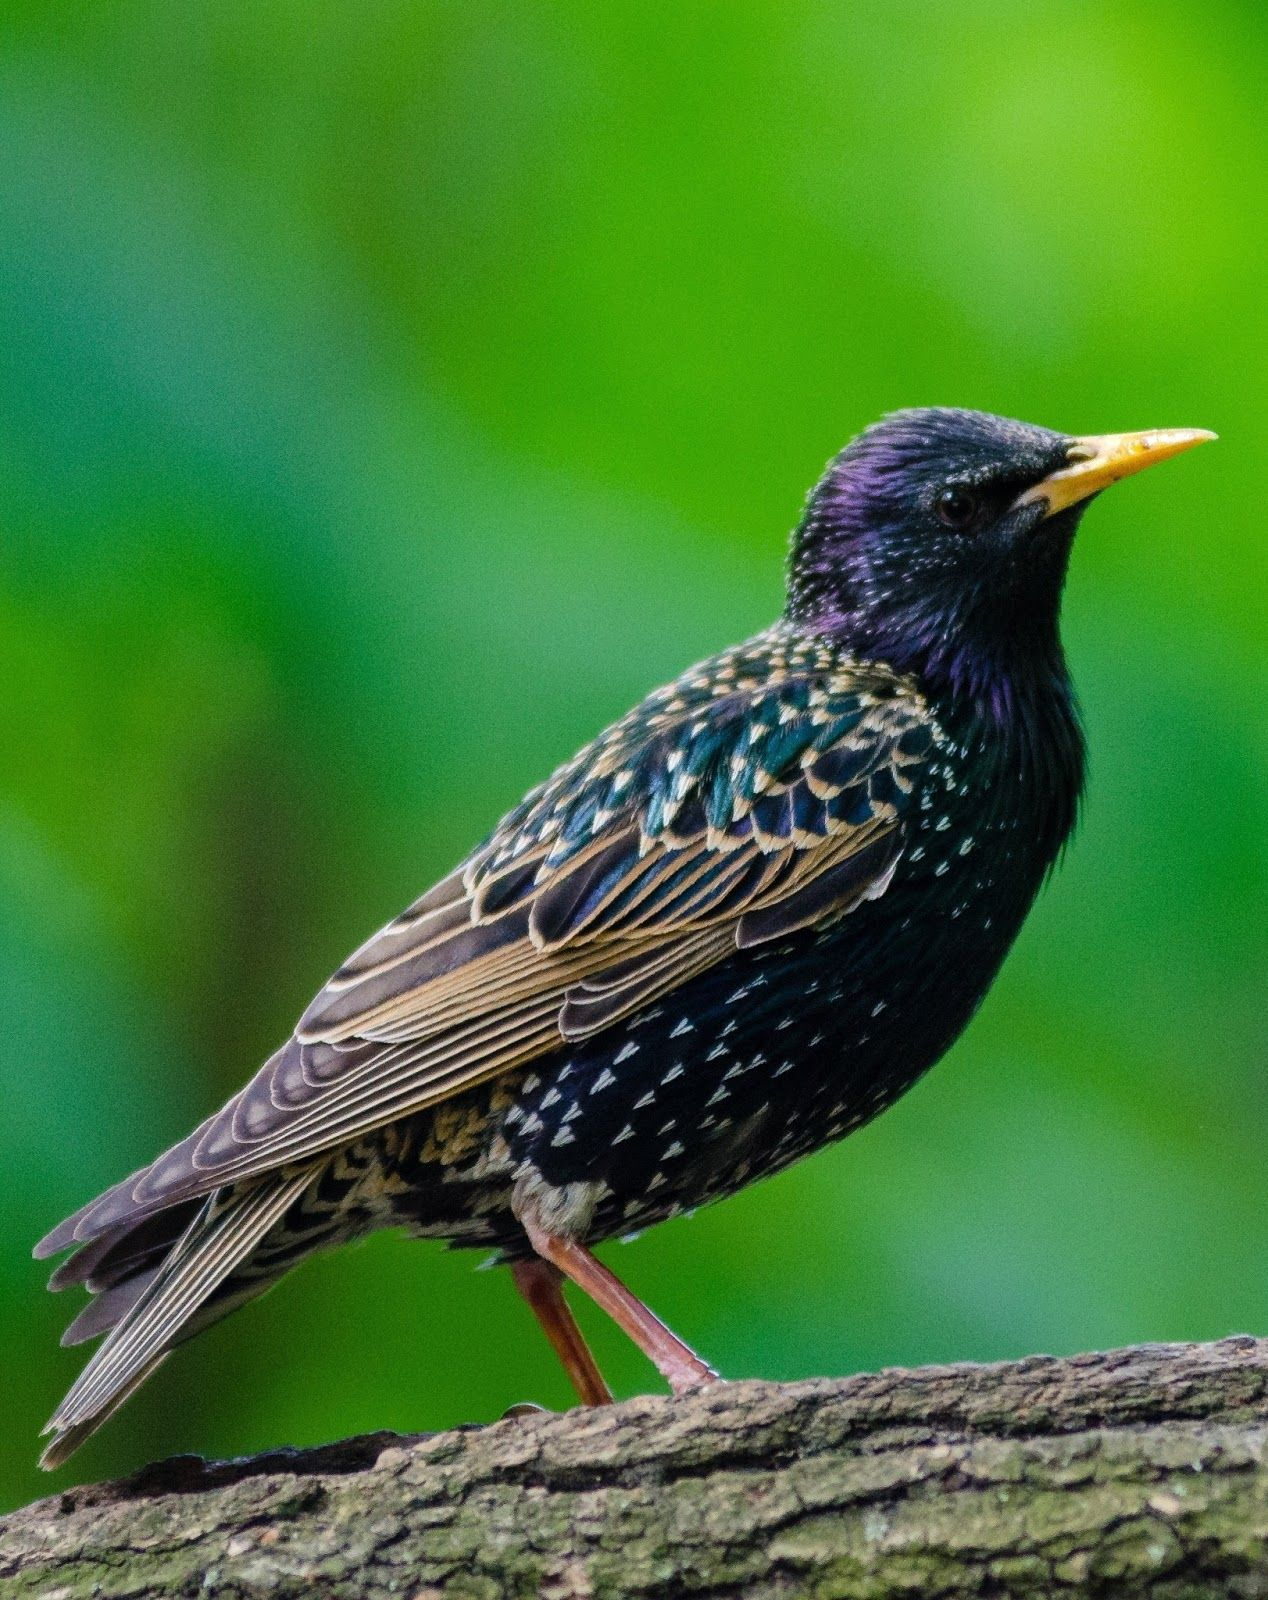 About Wild Animals Do Bird Songs Have Meaning Animals Birds Reptiles Pet